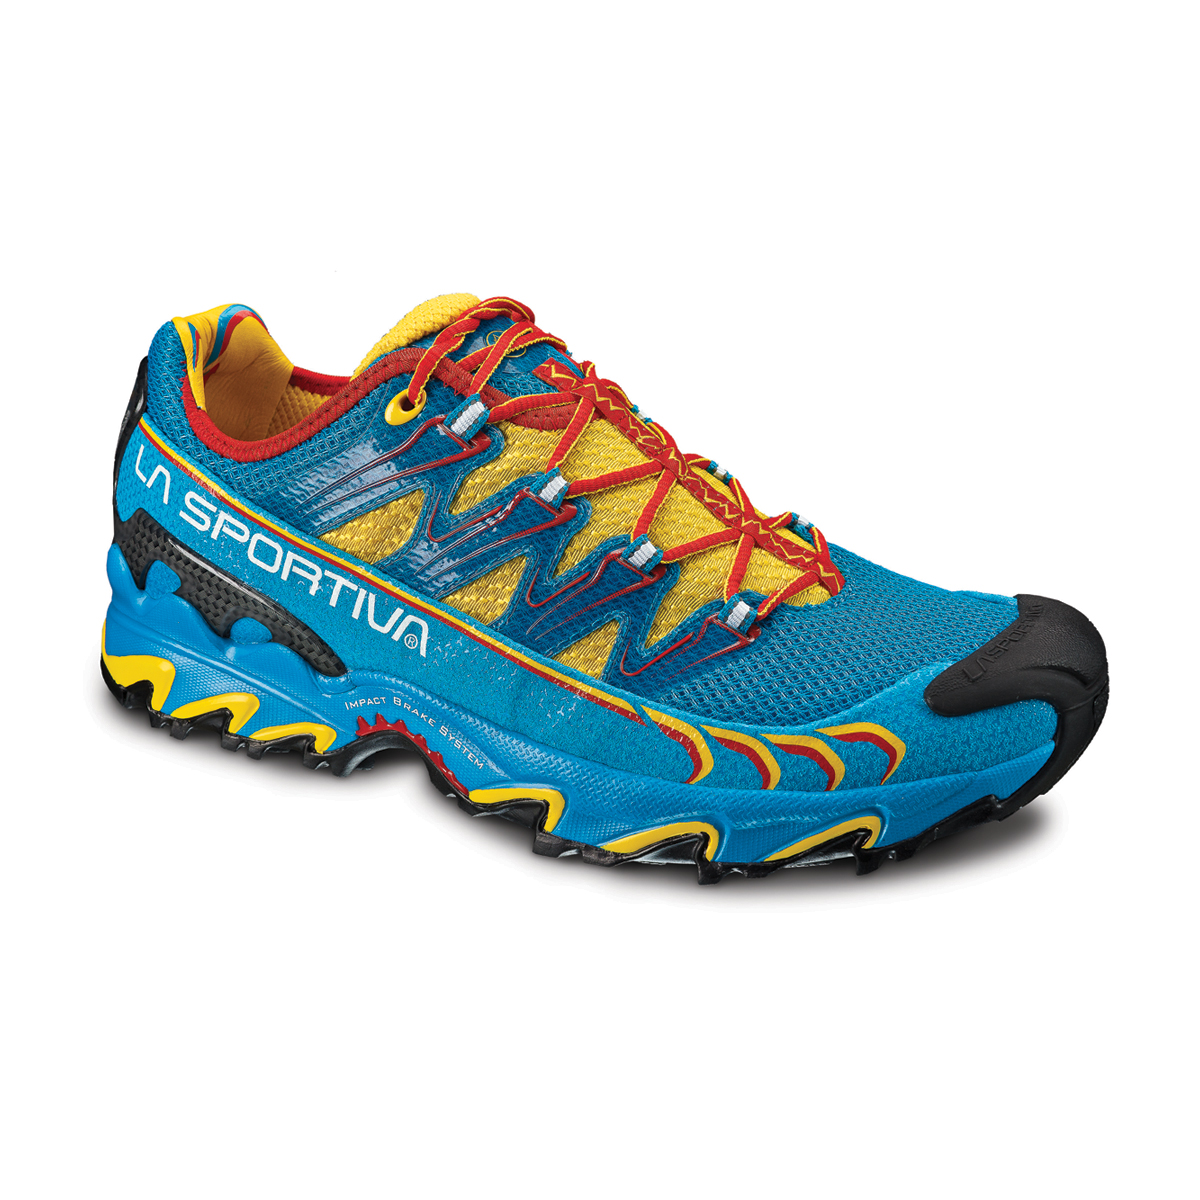 Long Distance Running Shoes Specs